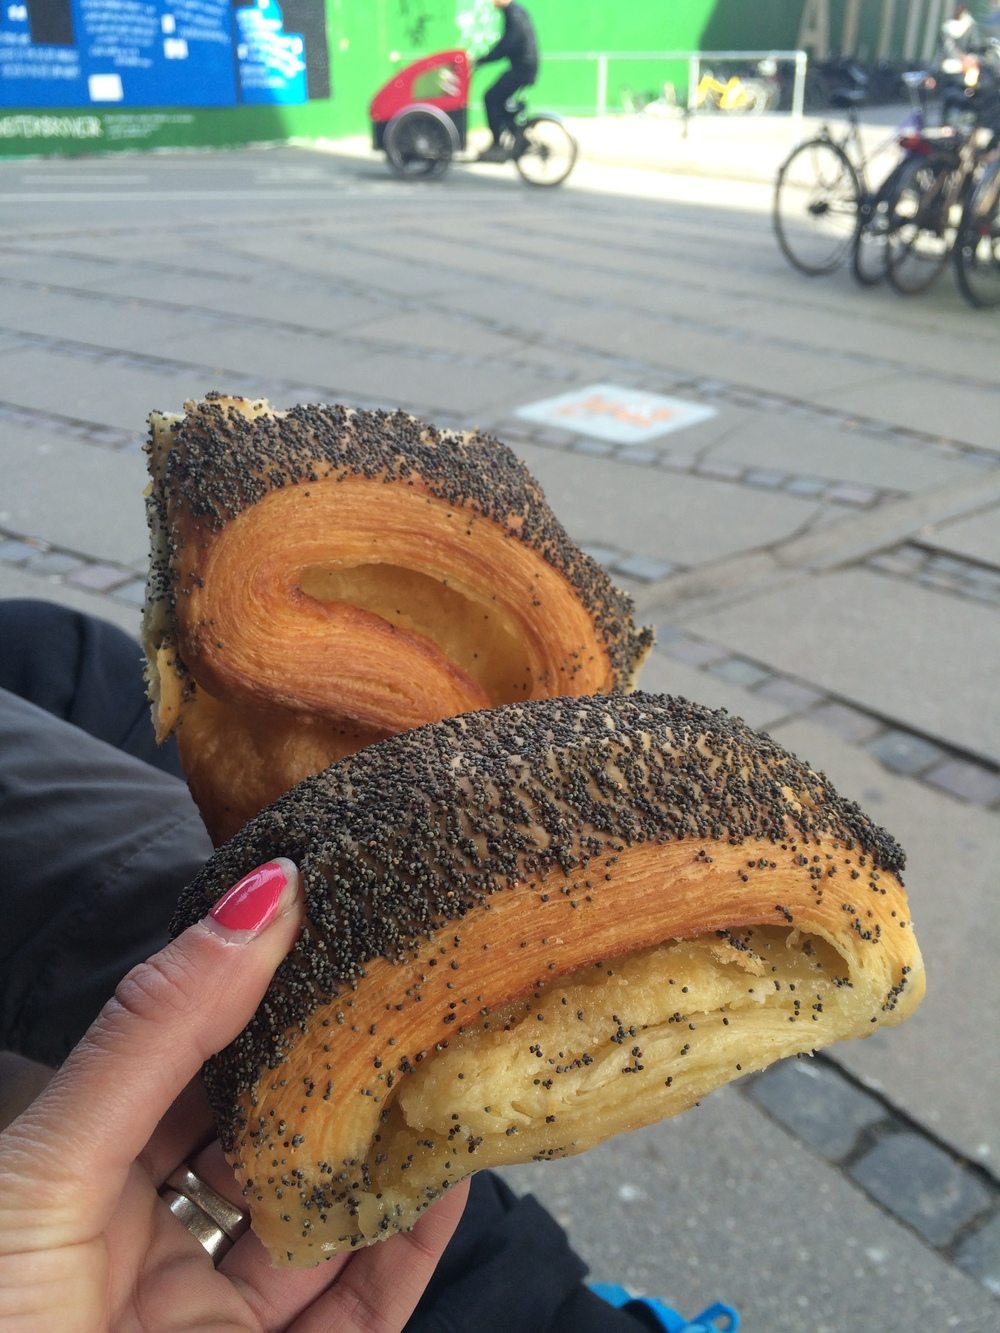 Best danish ever.